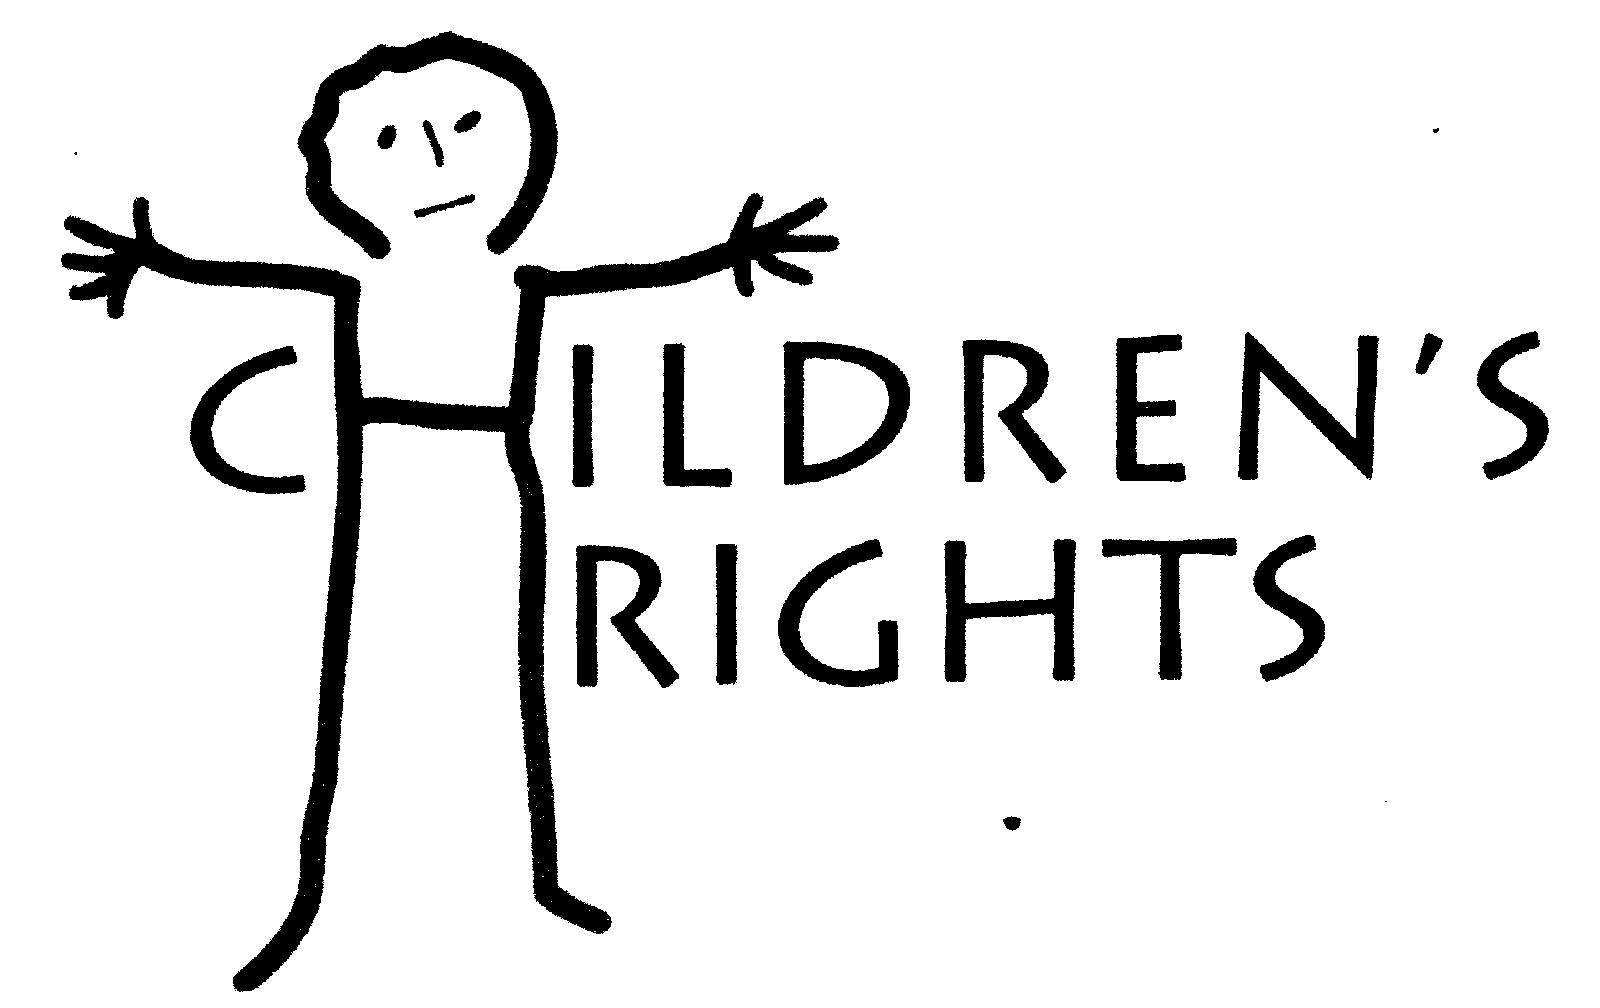 Explain on Child Rights